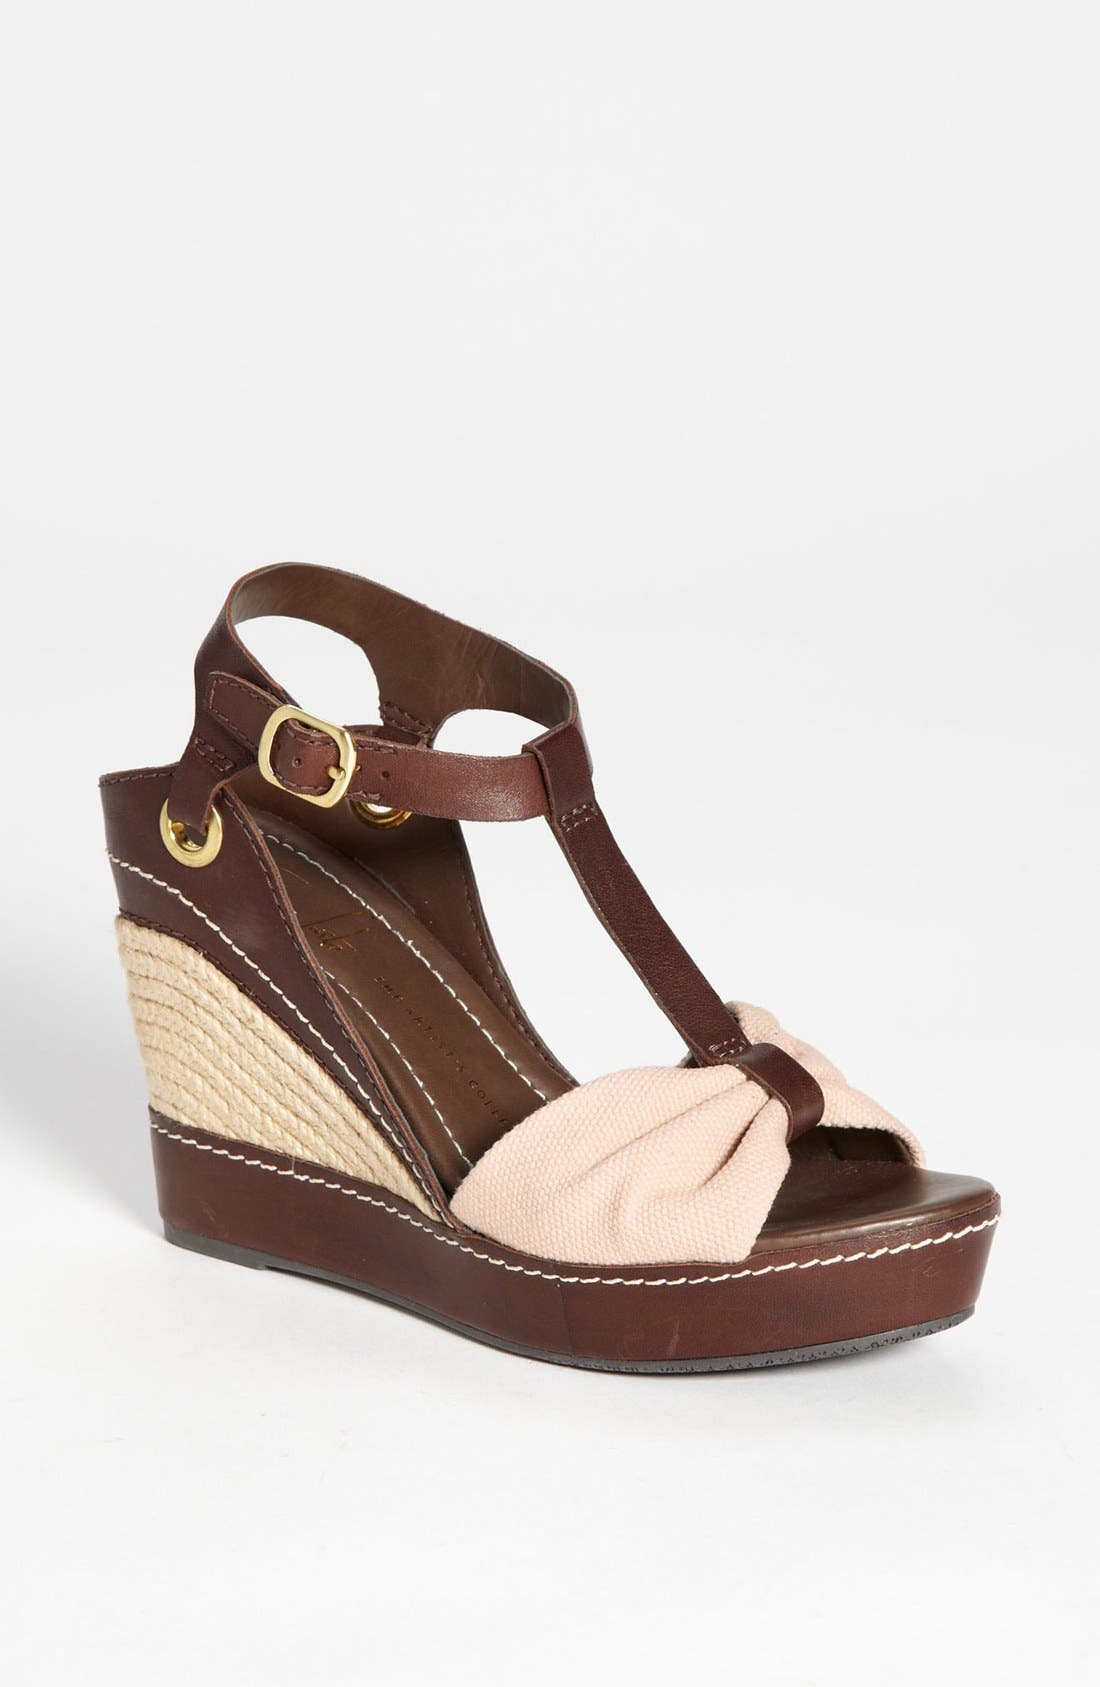 Alternate Image 1 Selected - Franco Sarto 'Riviera' Sandal